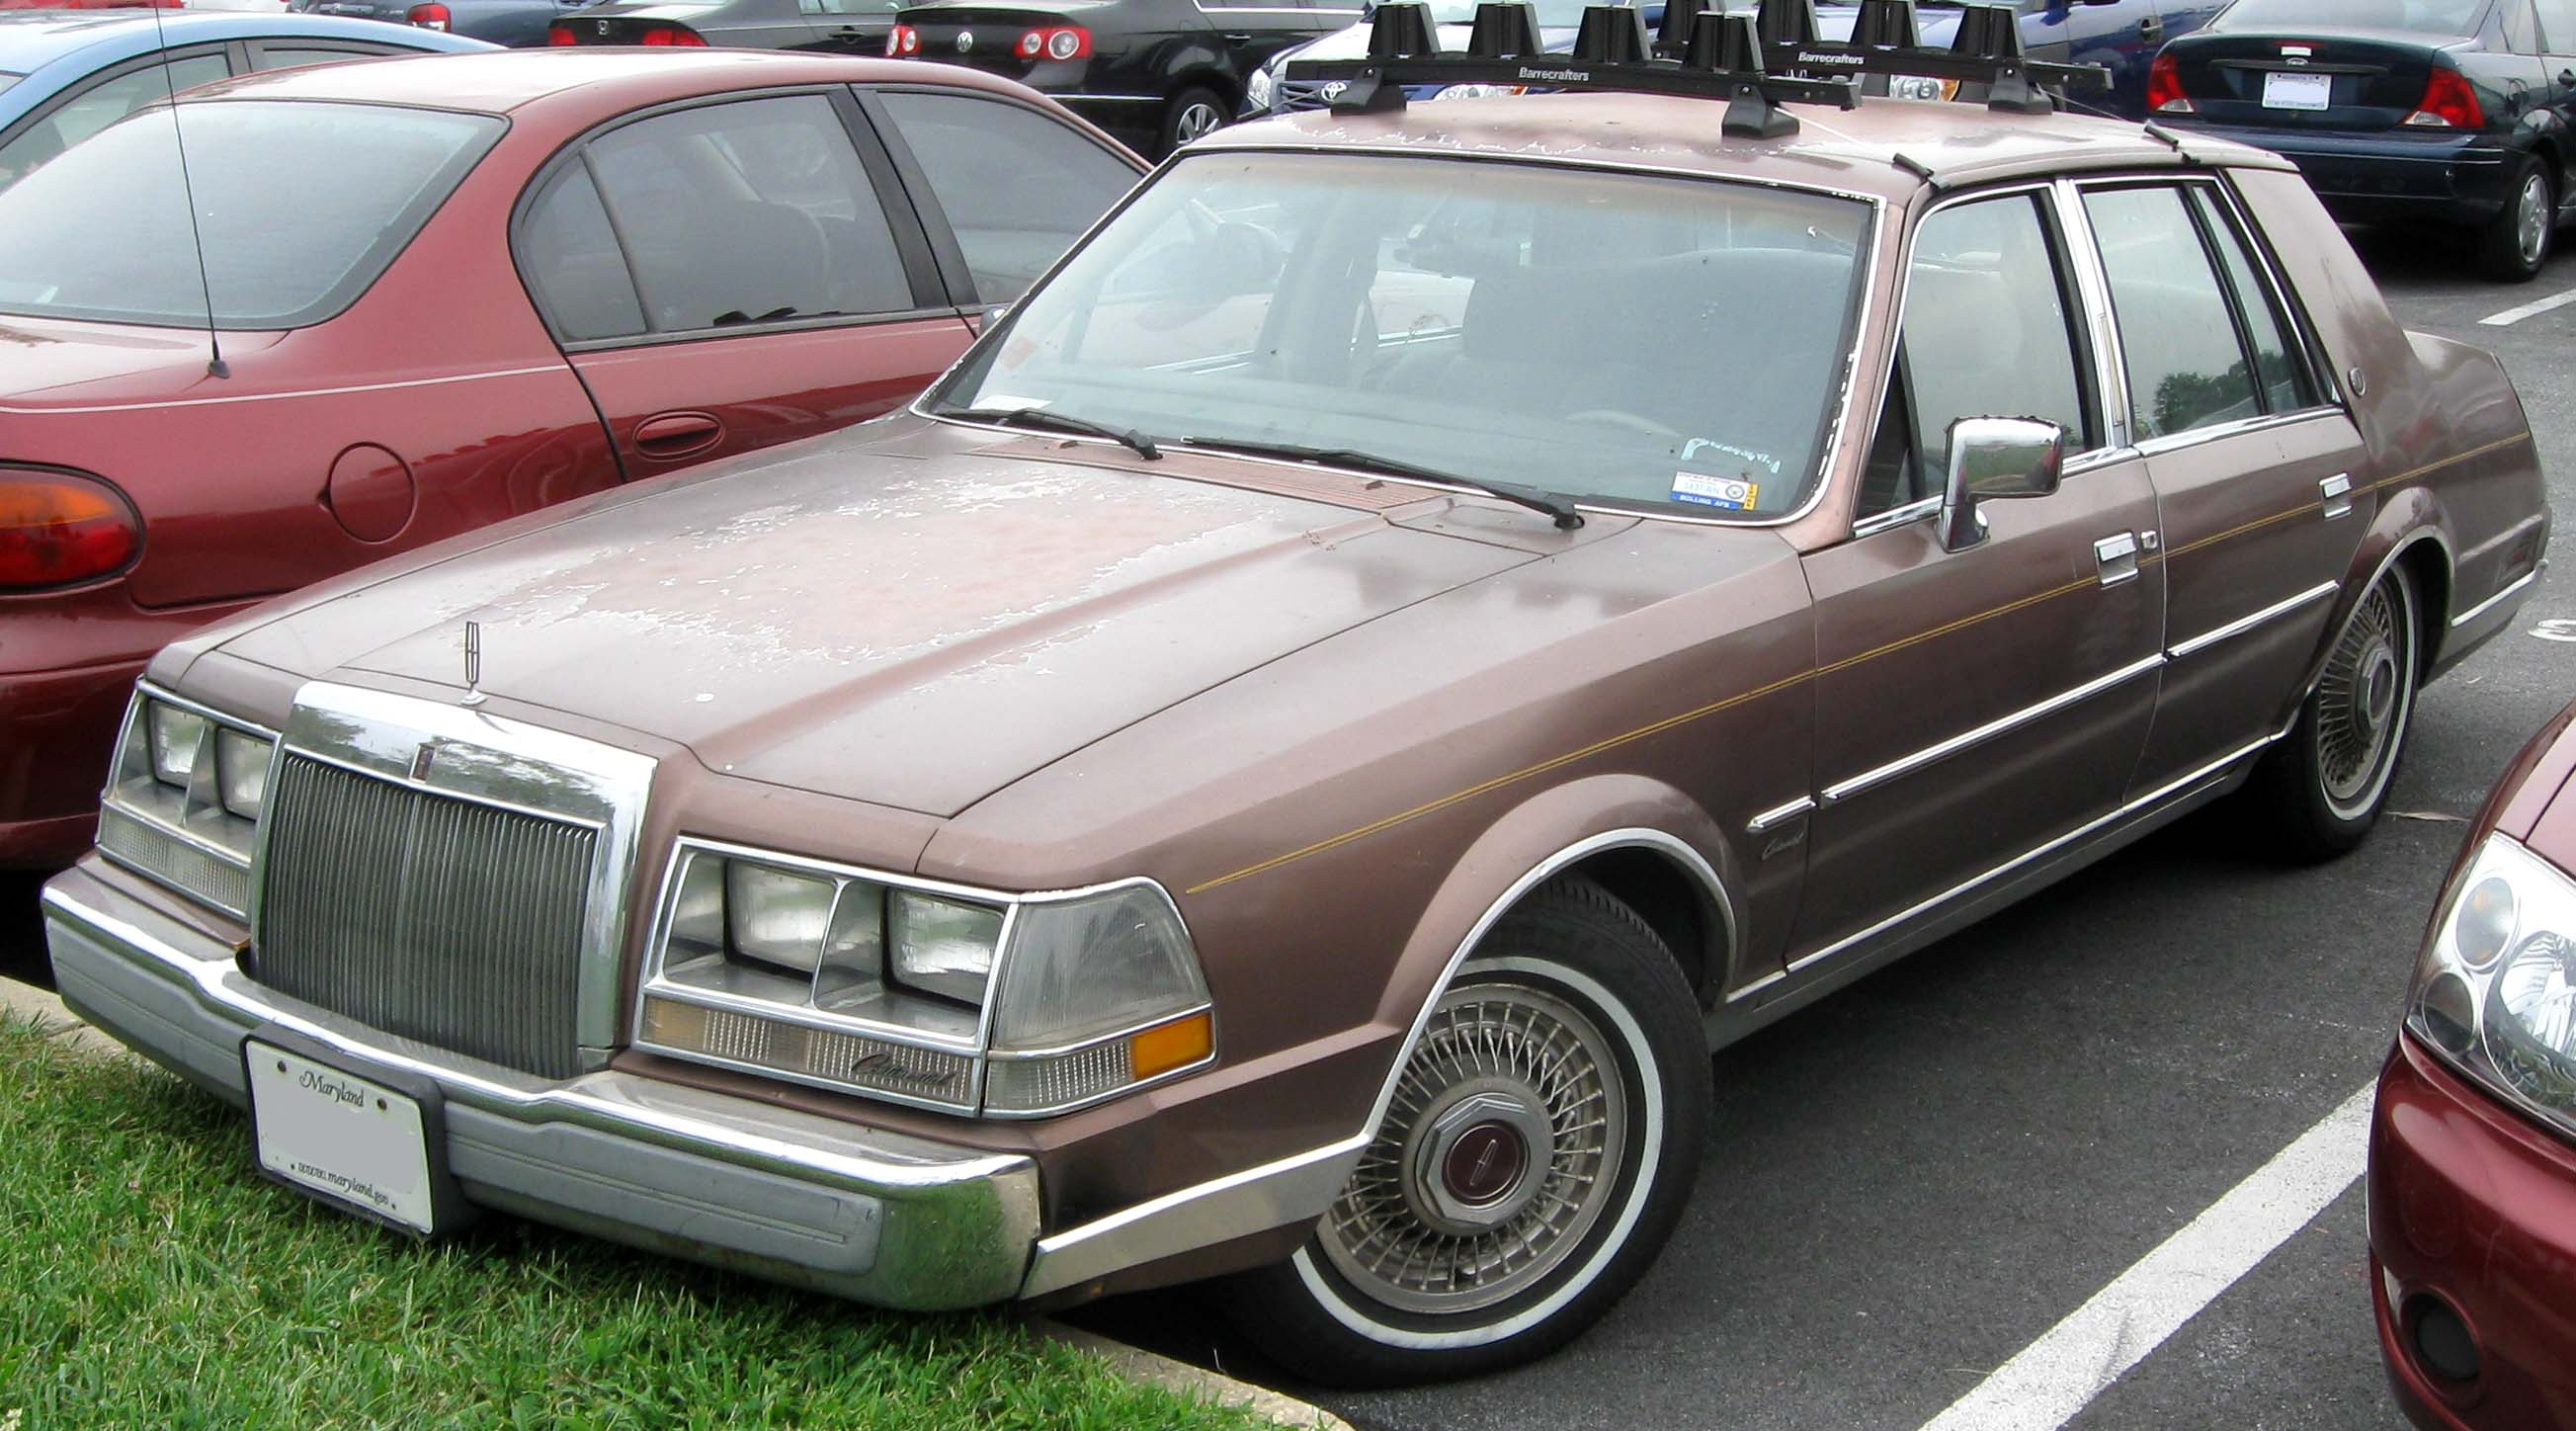 File 1984 1987 Lincoln Continental 09 03 2010 Jpg Wikimedia Commons